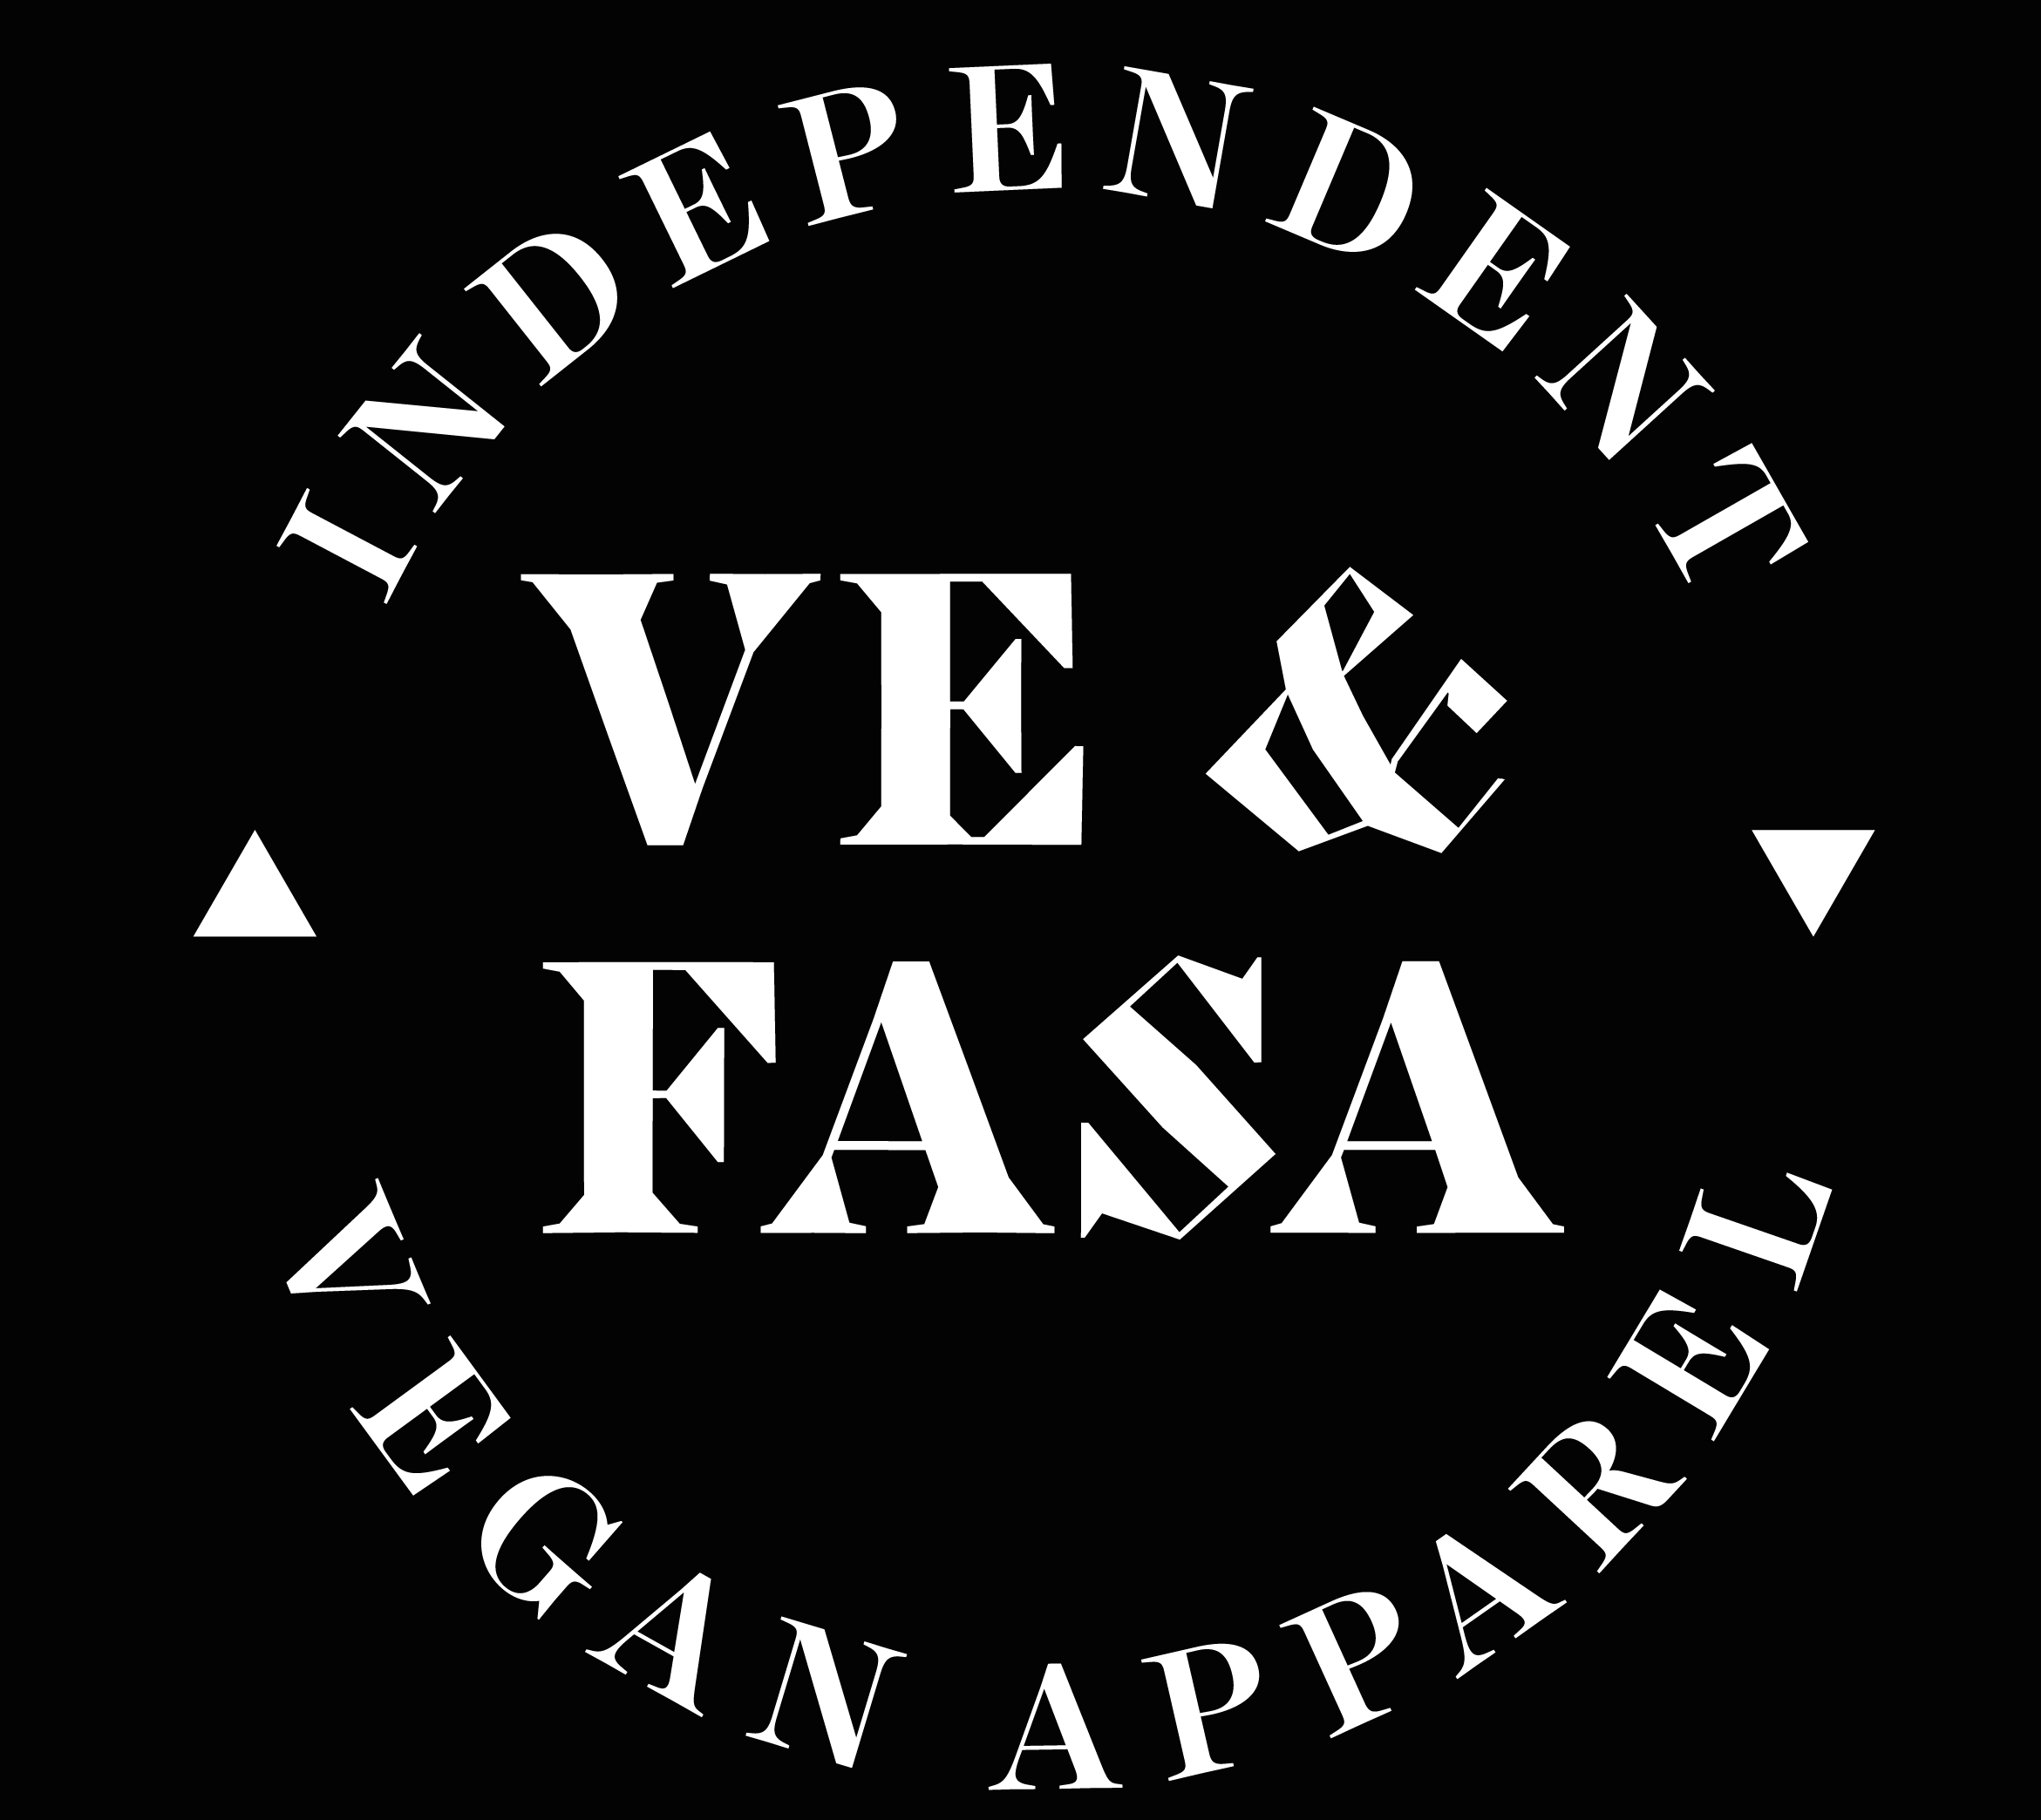 Ve & fasa - veganskt mode